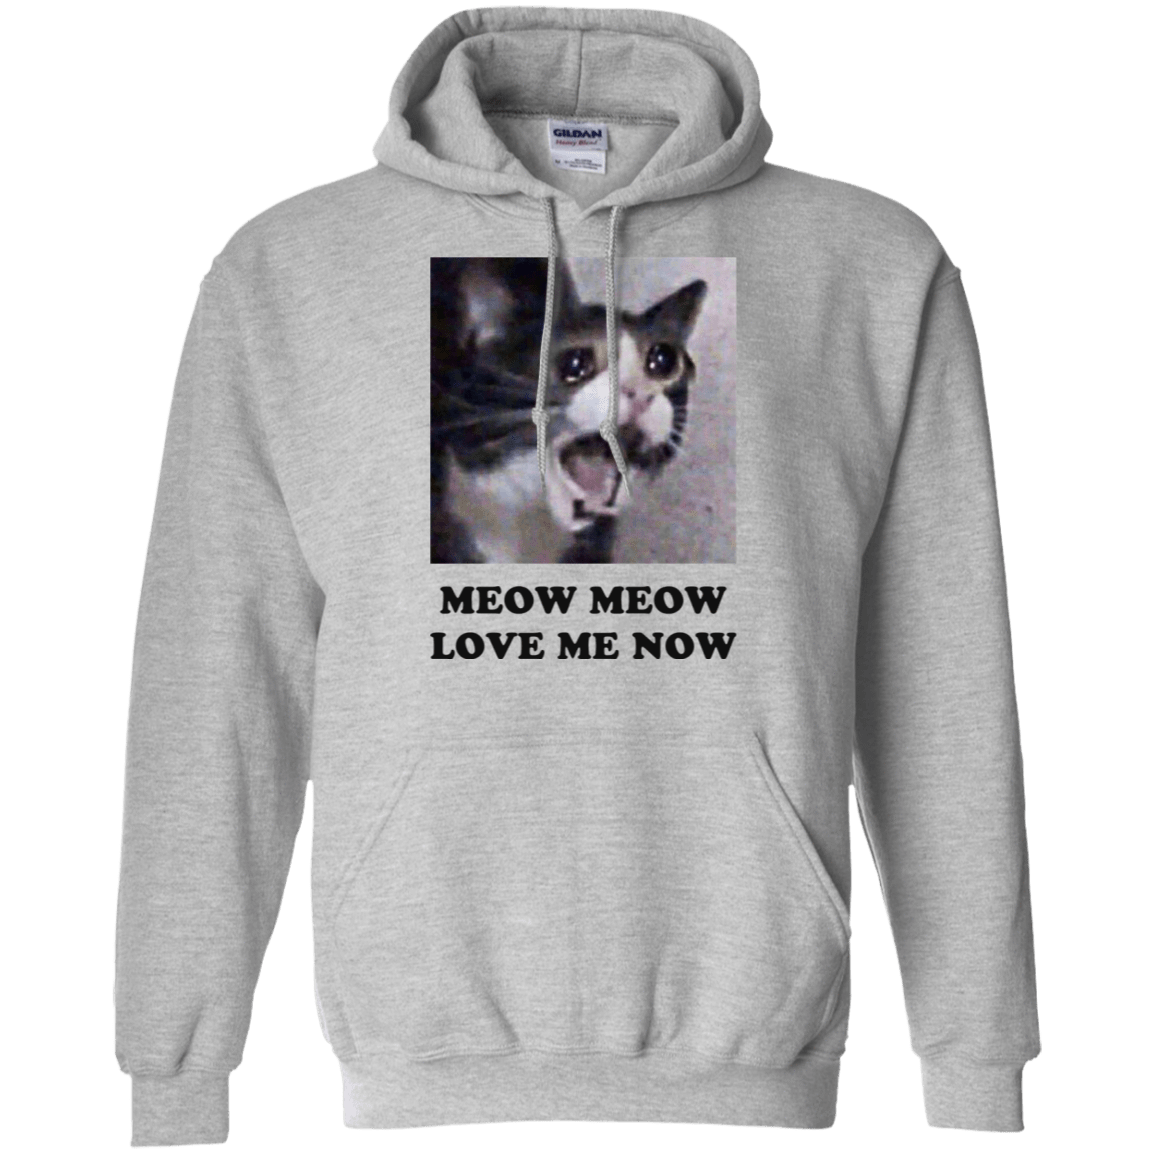 Meow Meow Love Me Now Cat Lovers T-Shirts 541-4741-72089488-23111 - Tee Ript